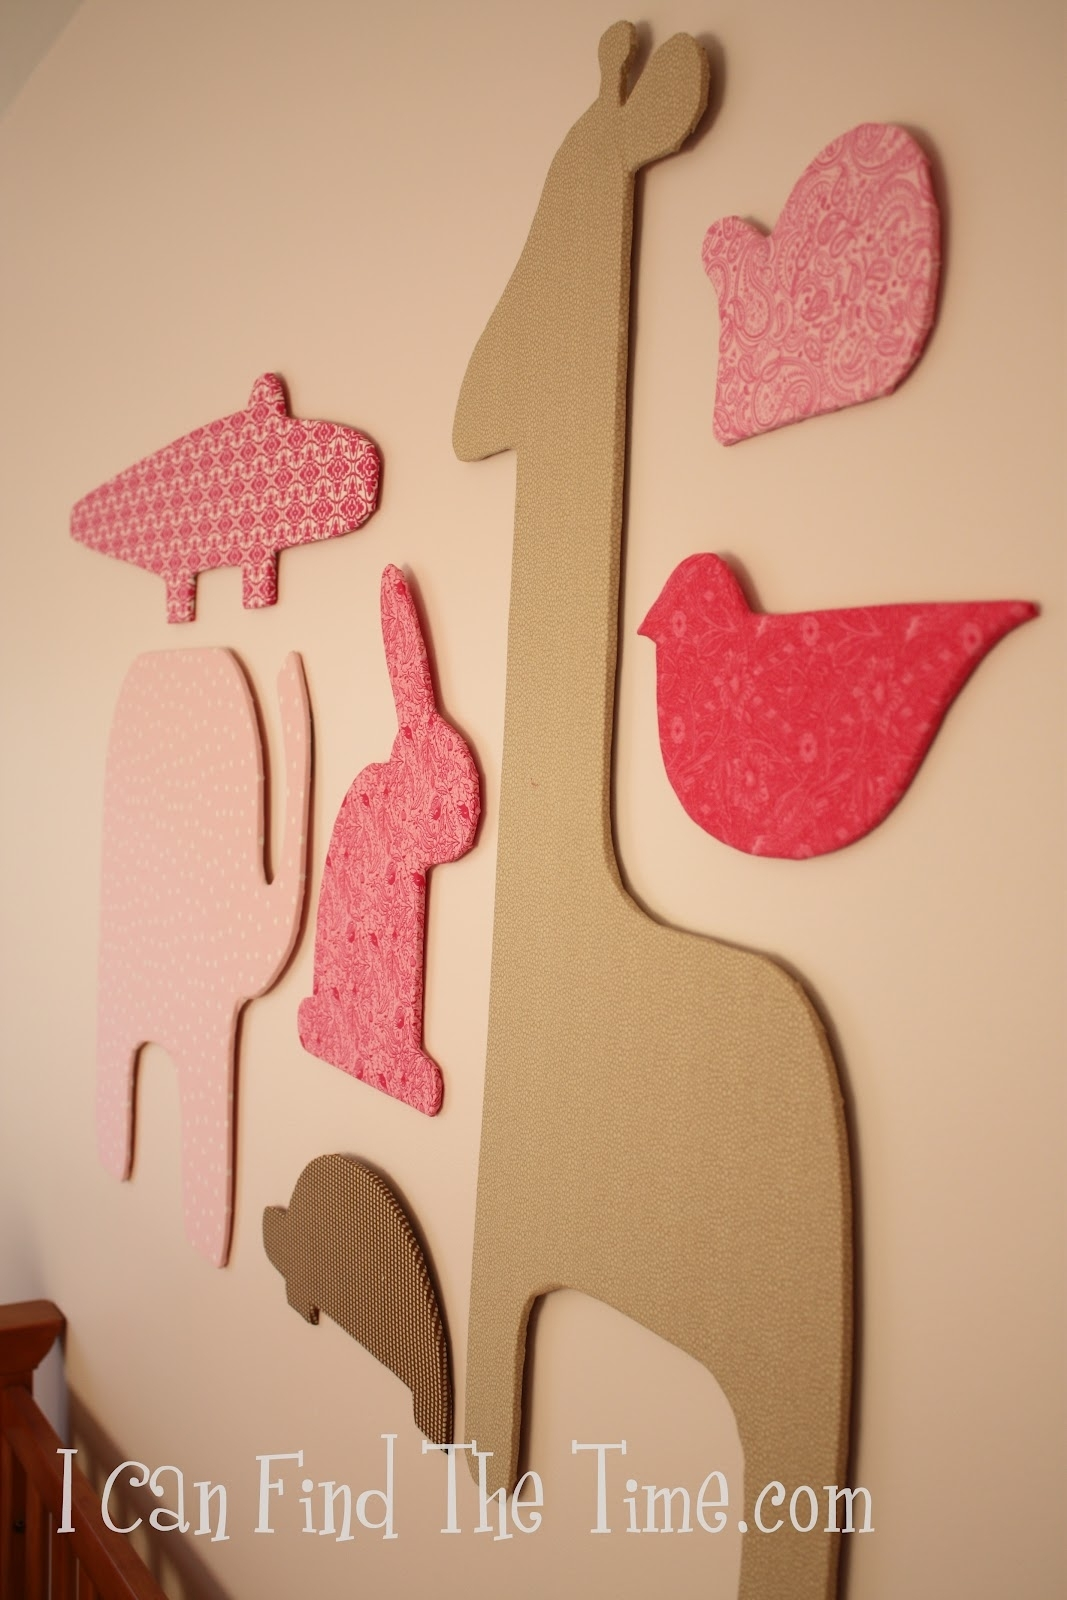 Easy Fabric Silhouette Wall Art Within Most Current Fabric Animal Silhouette Wall Art (Gallery 1 of 15)